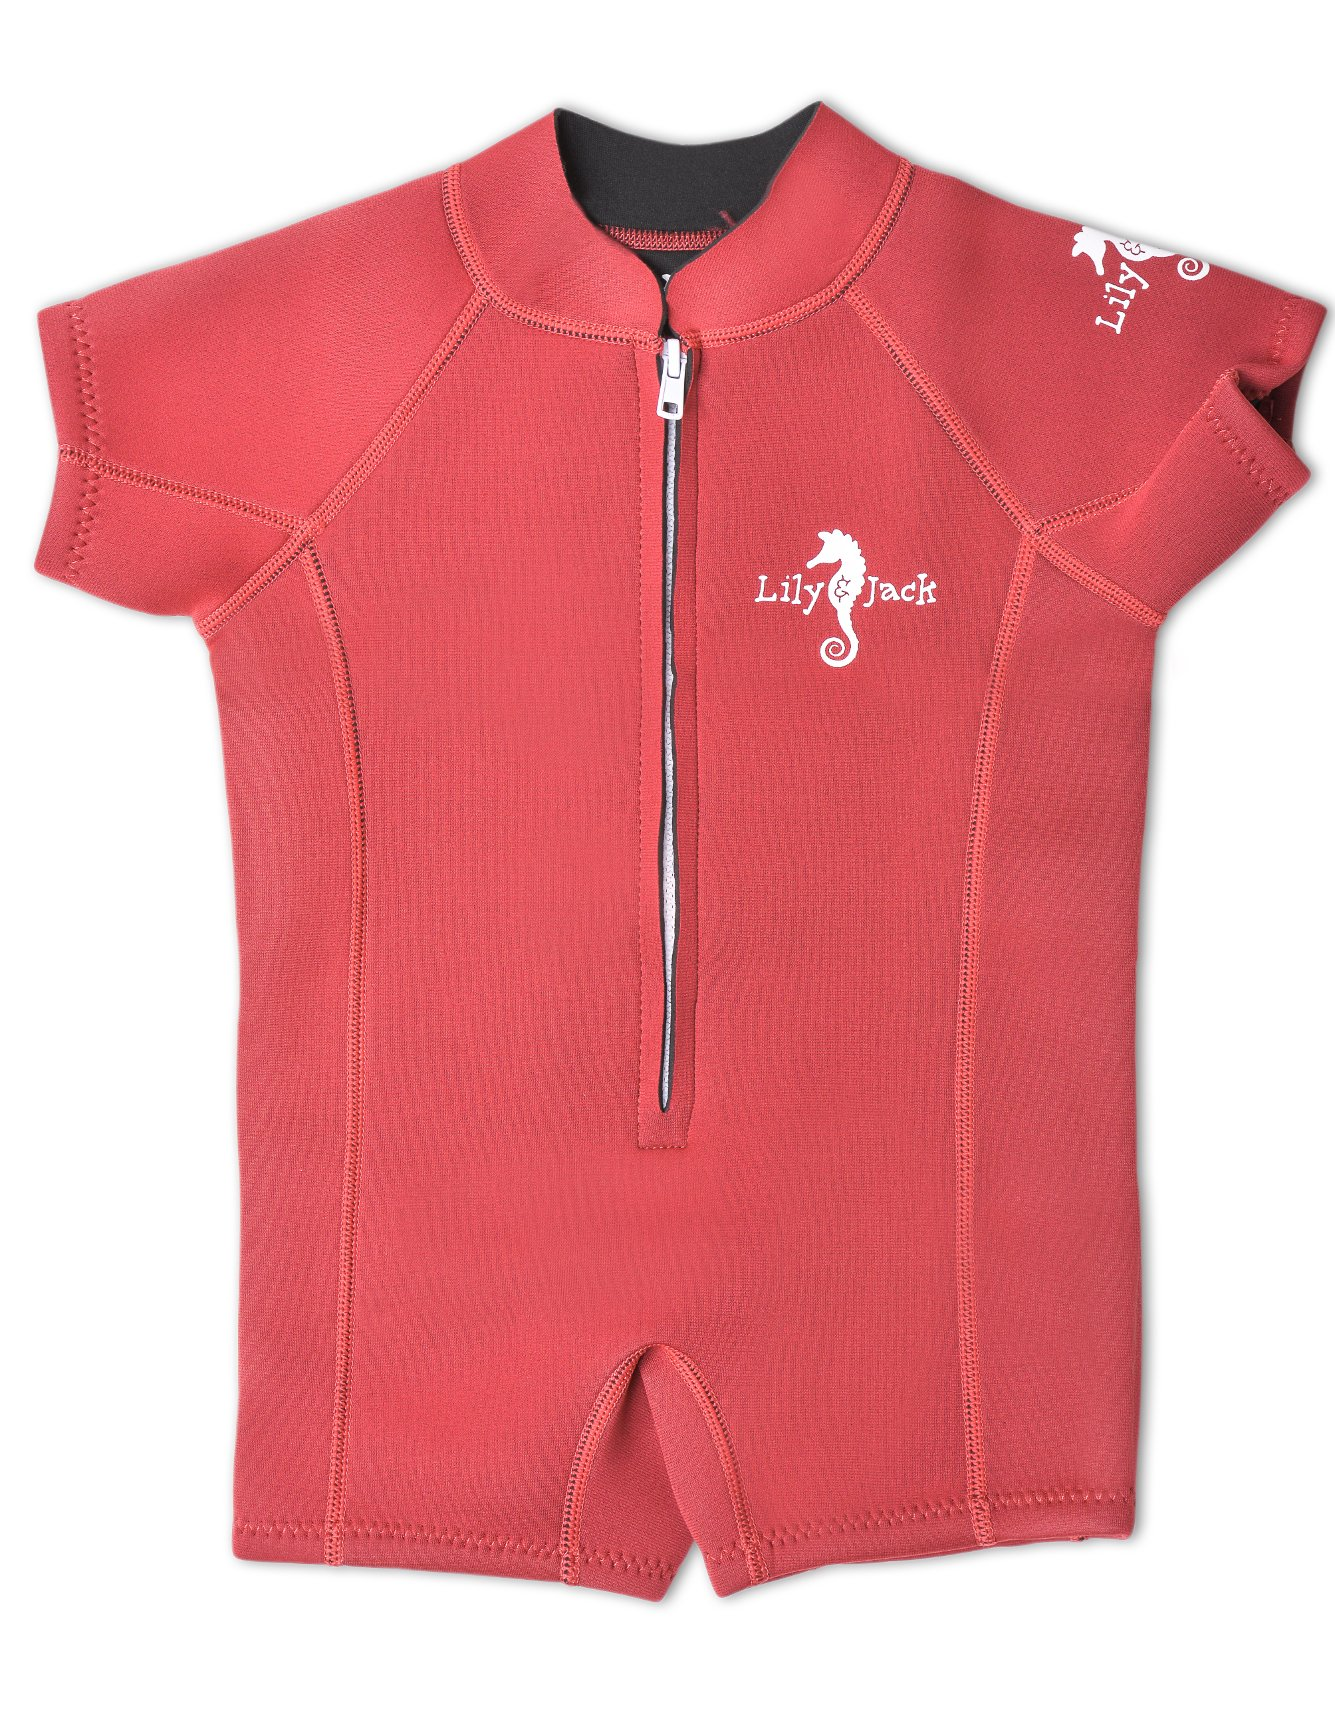 Baby Wetsuit Neoprene Swimwear for Boy and Girl Toddlers with UV Protection. (Medium / 18-24 Months, Red) by Lily&Jack